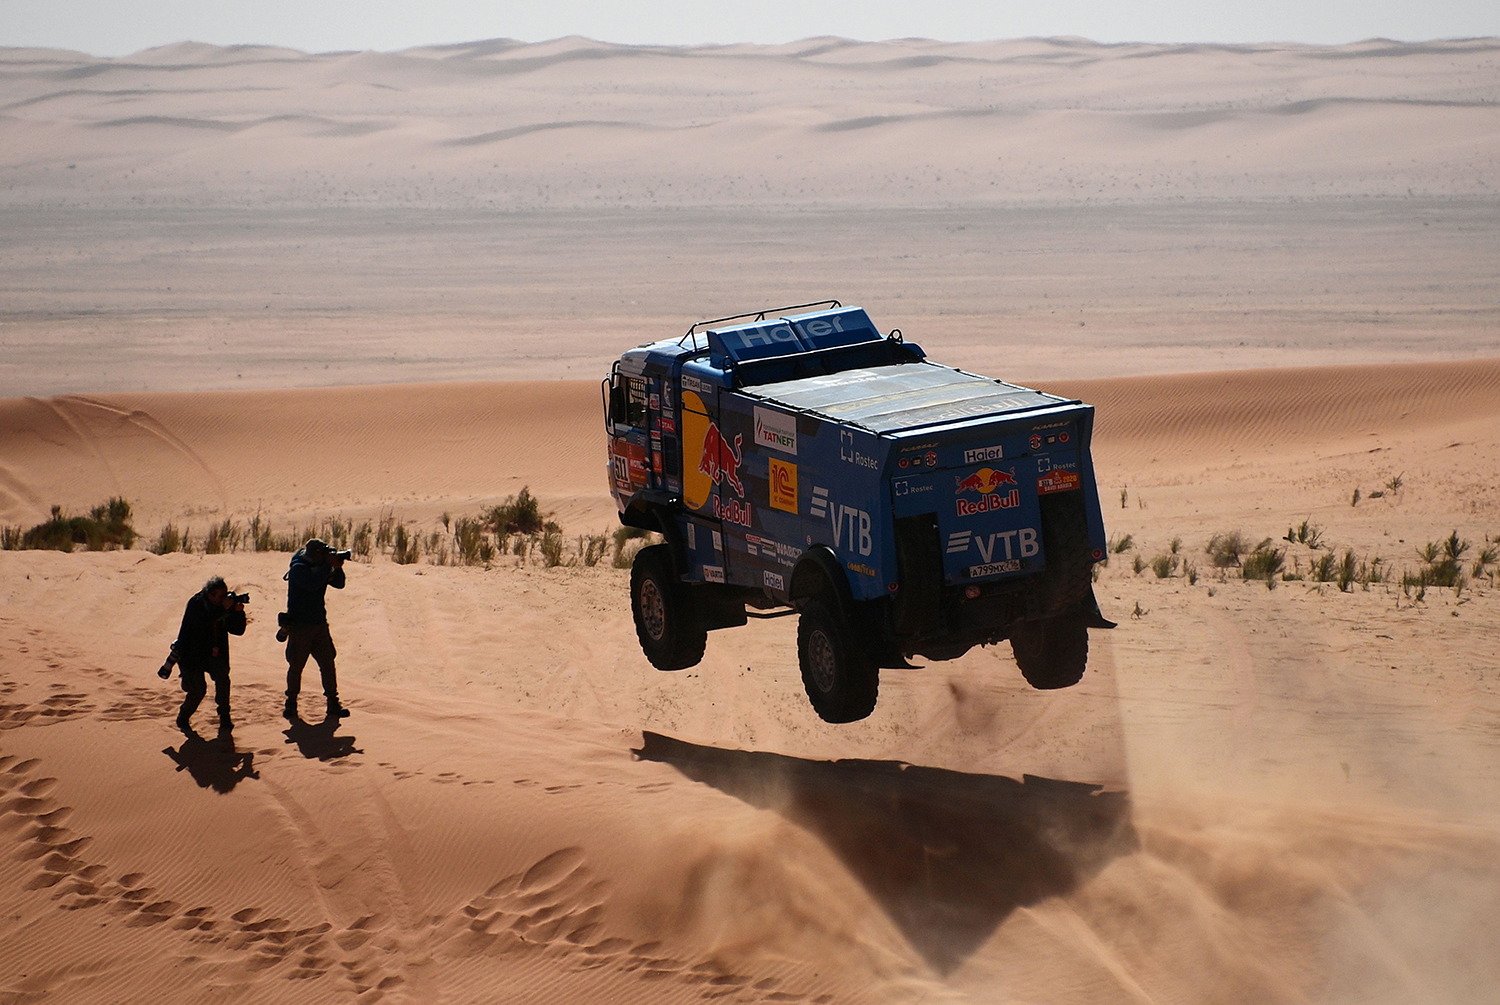 Drivers compete during Stage 6 of the Dakar 2020 between Ha'il and Riyadh, Saudi Arabia, on Jan. 10. FRANCK FIFE/AFP via Getty Images